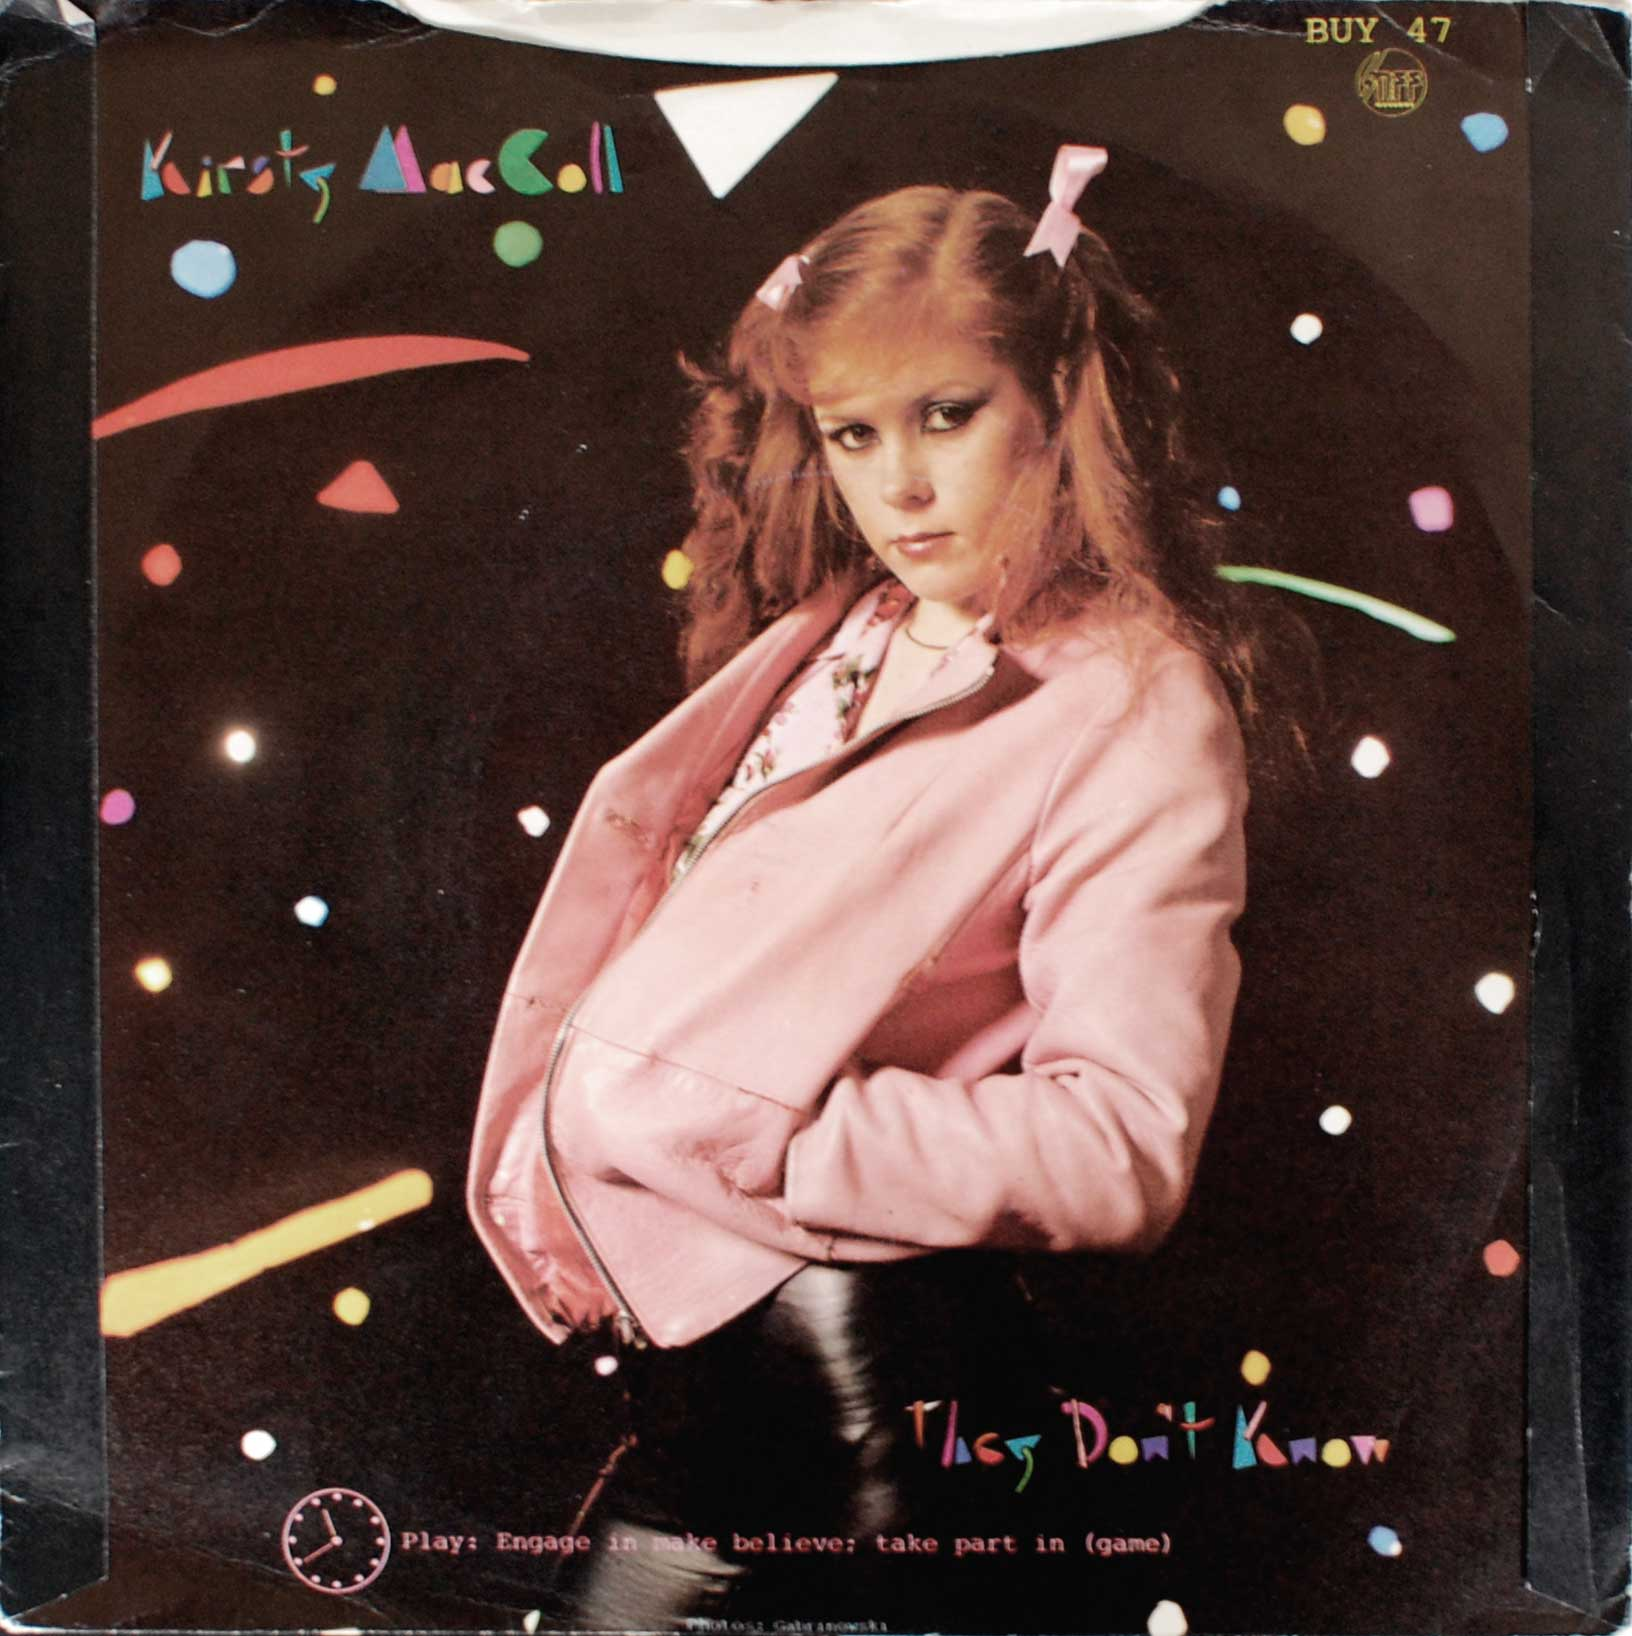 They Don't Know - picture sleeve b side